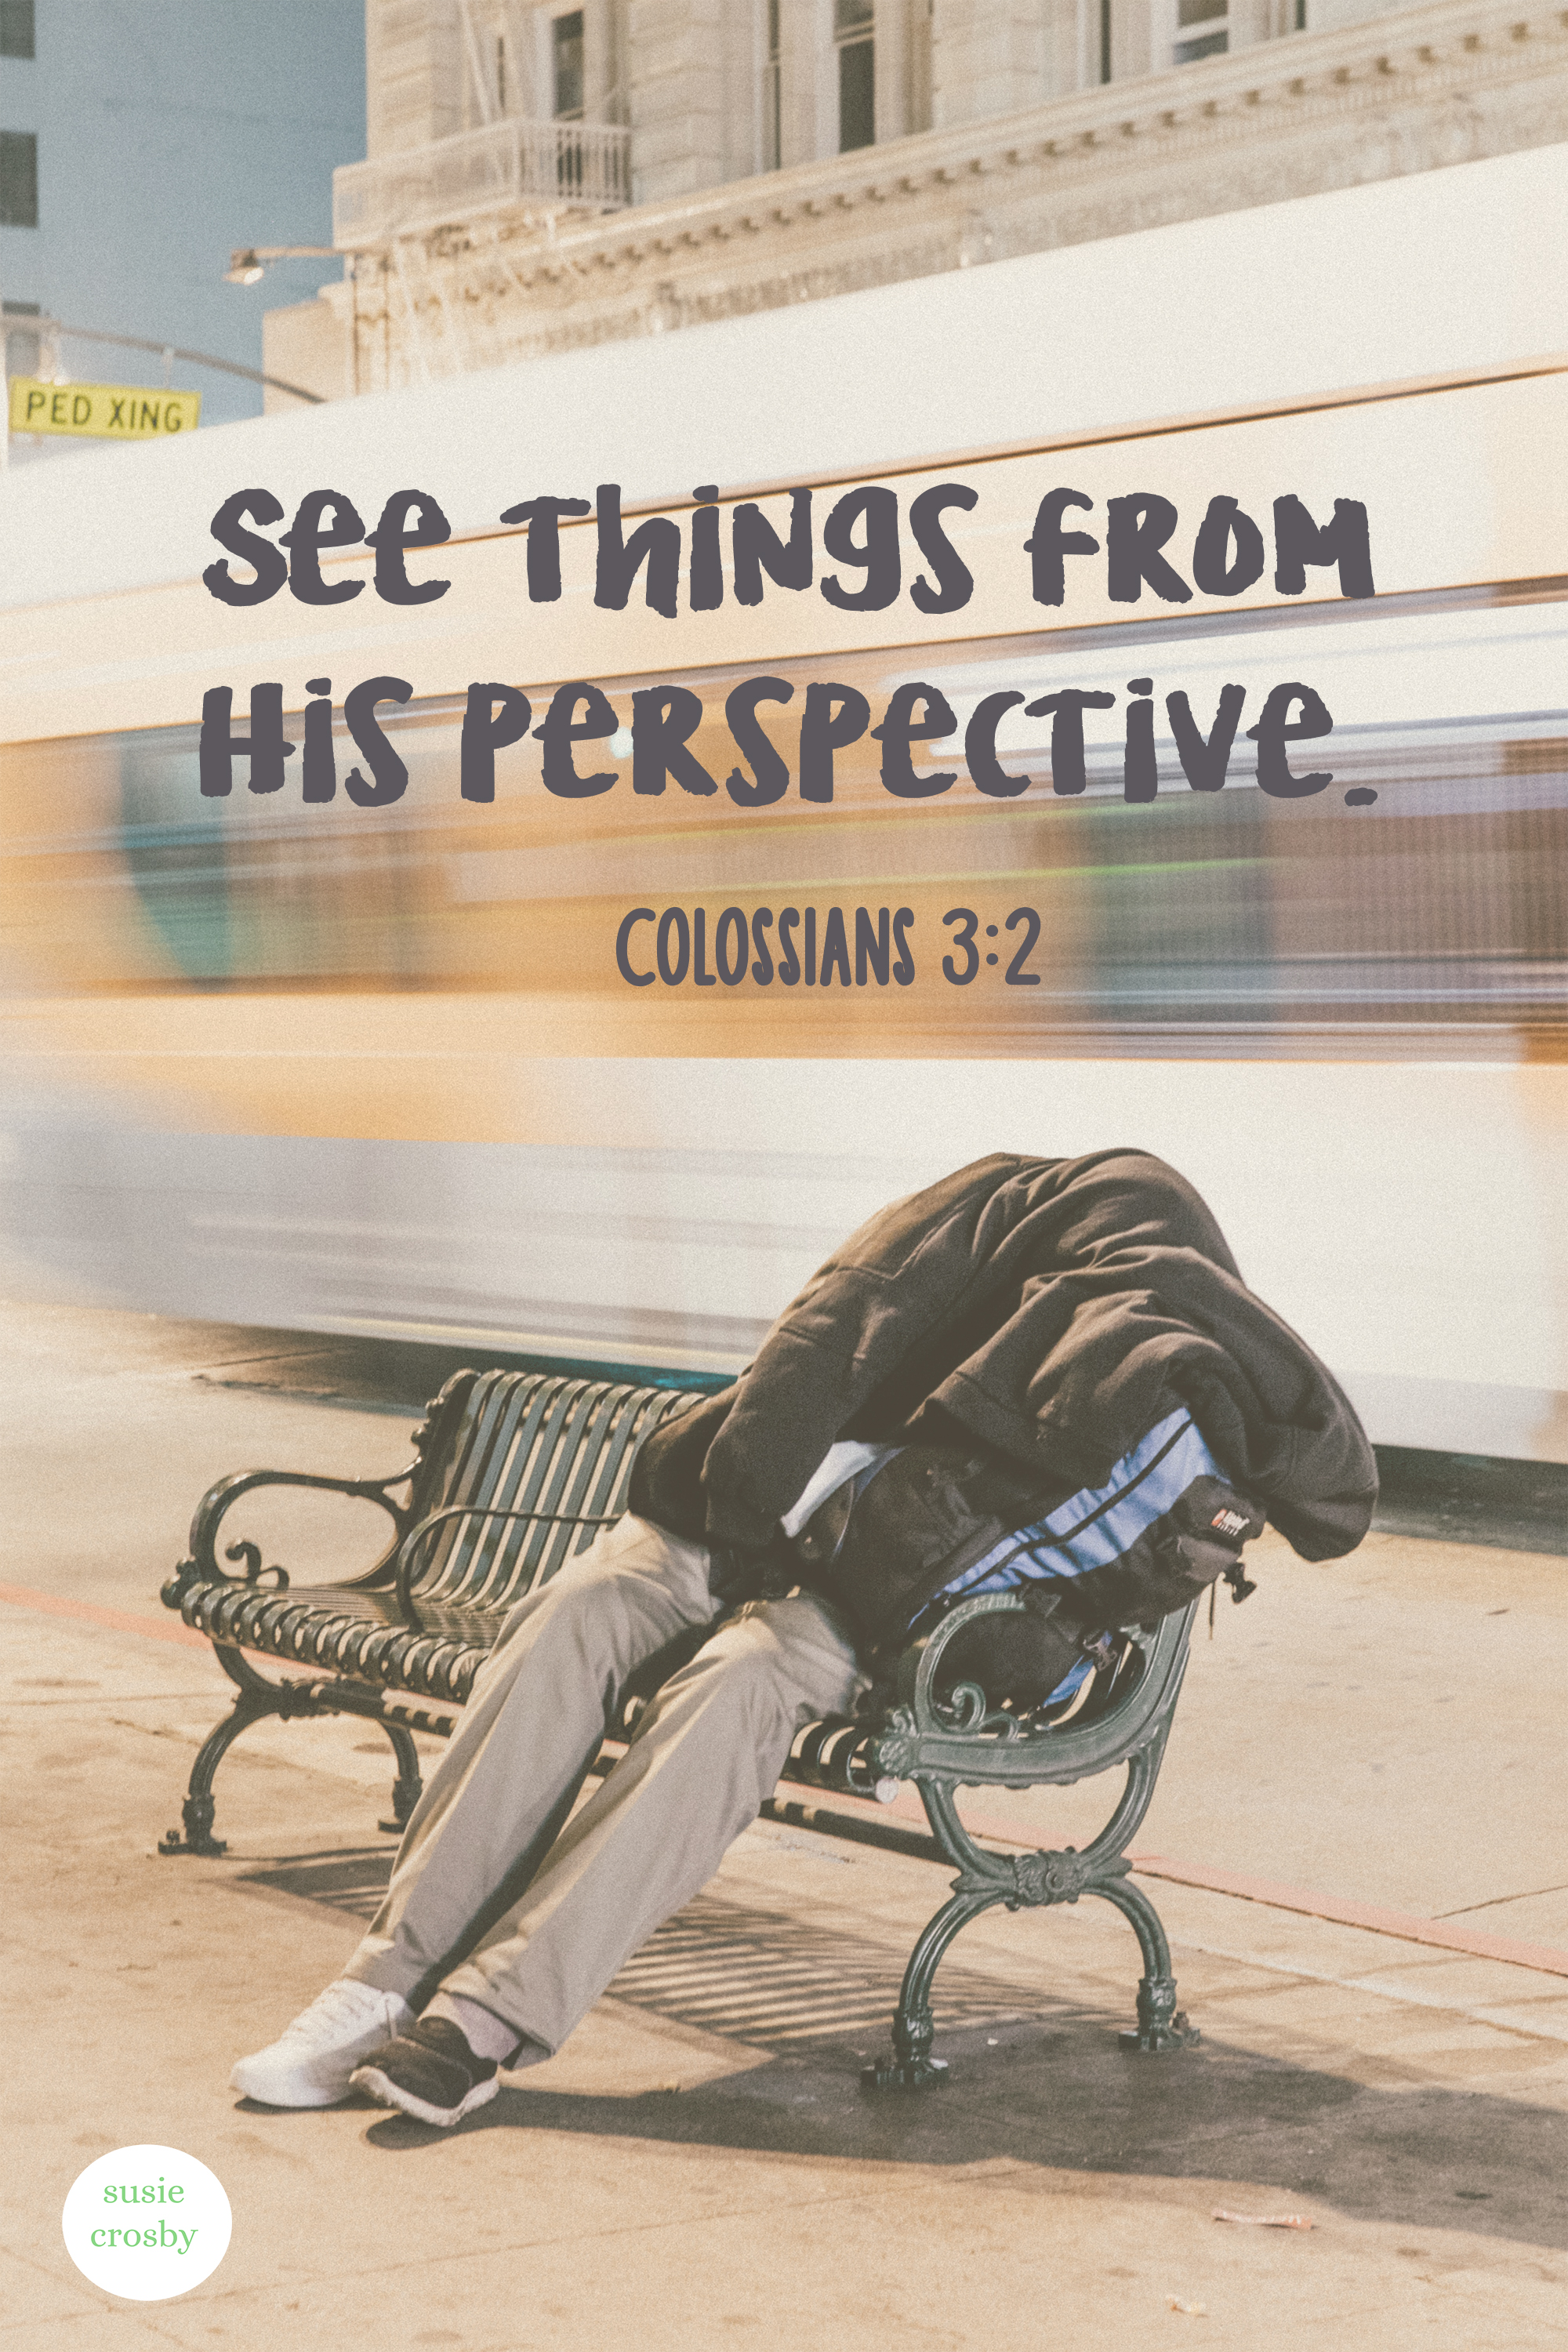 colossians-3-2-big.jpg